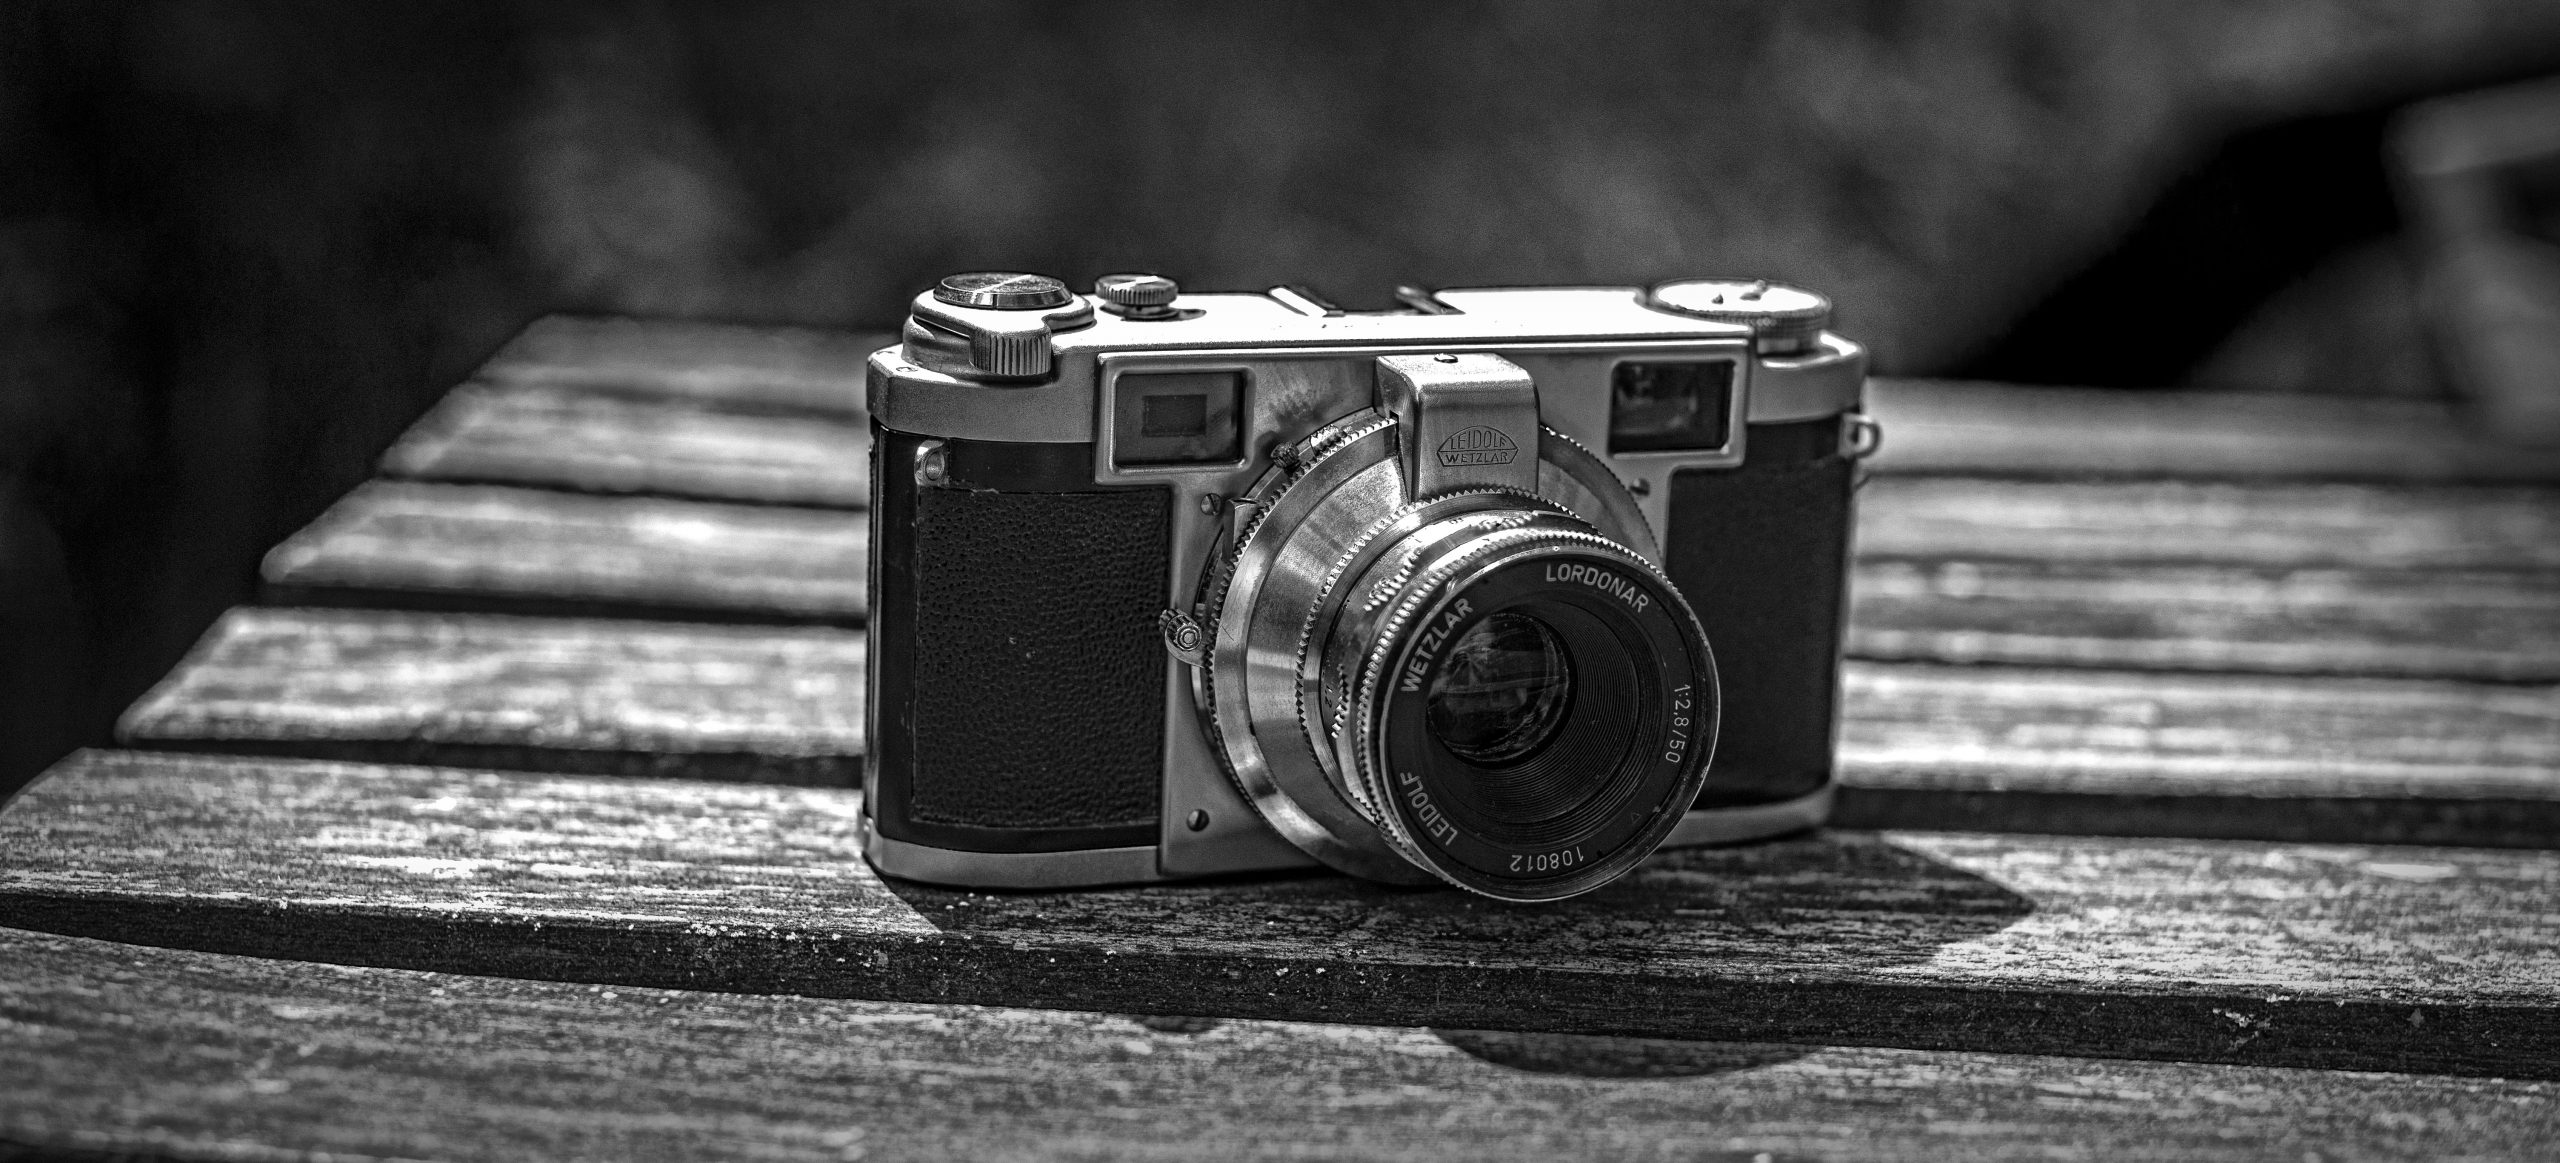 Lordomat 35mm film camera